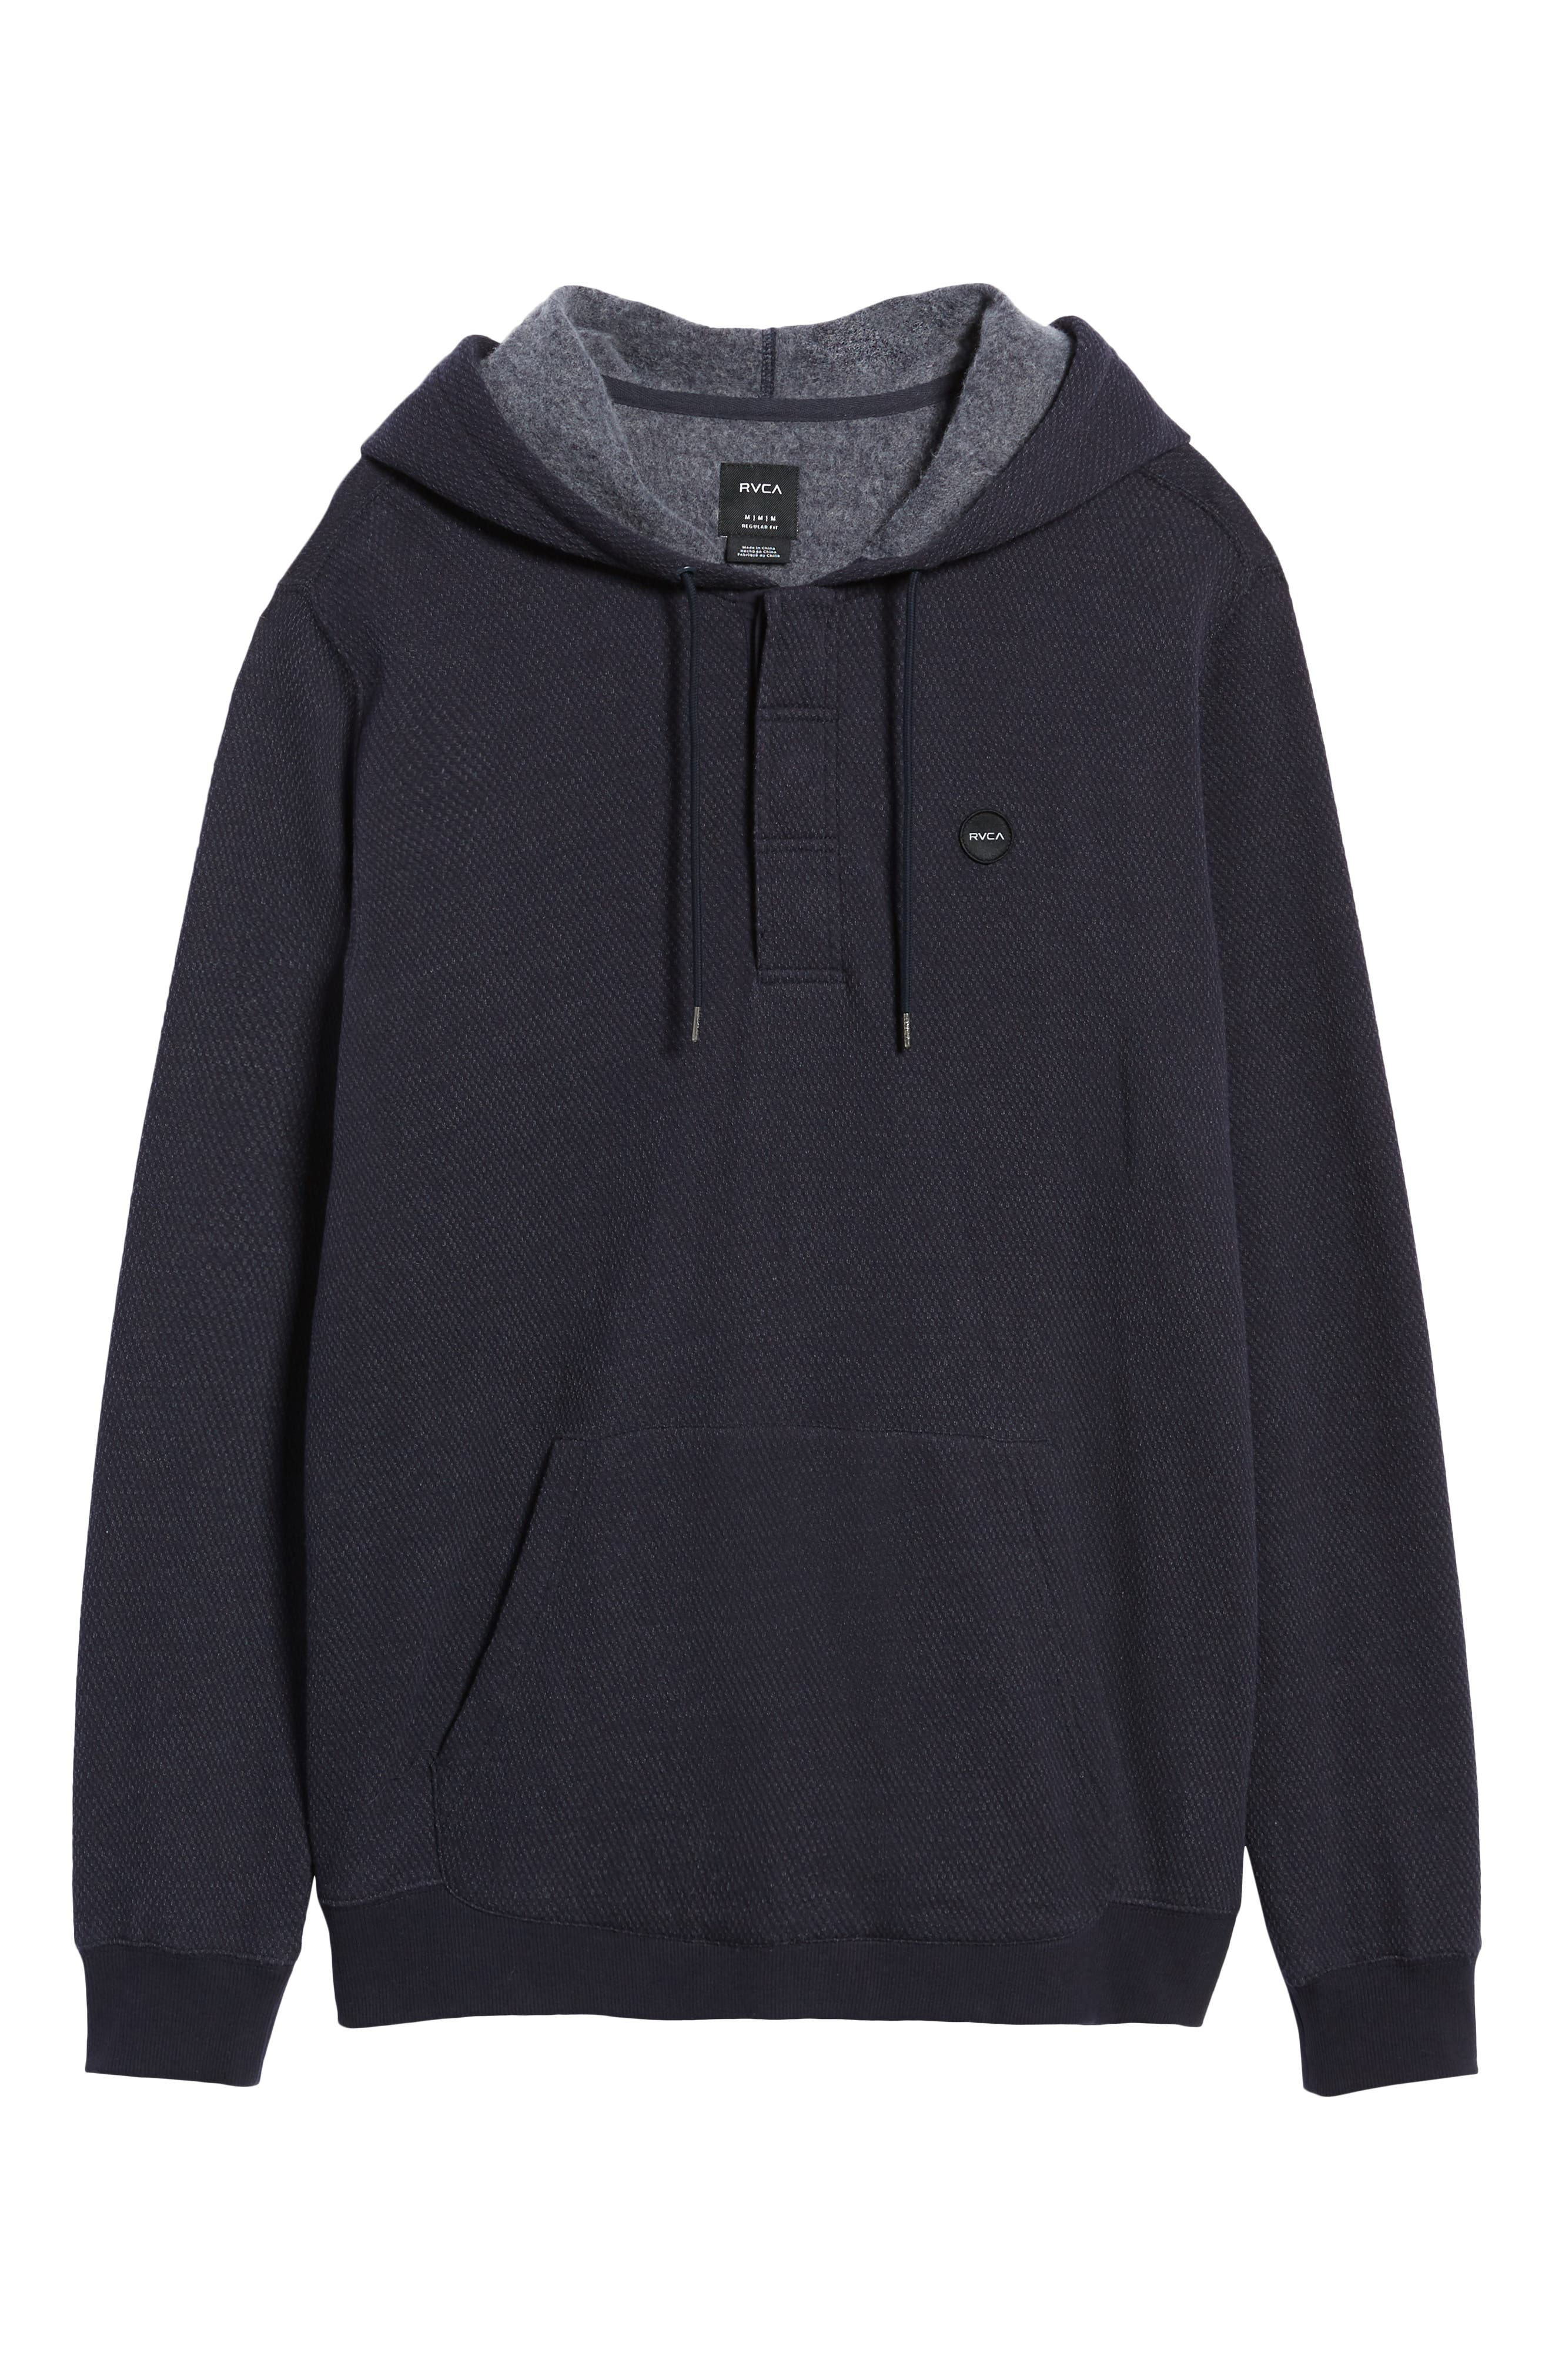 Lupo Pullover Hoodie,                             Alternate thumbnail 6, color,                             NEW NAVY